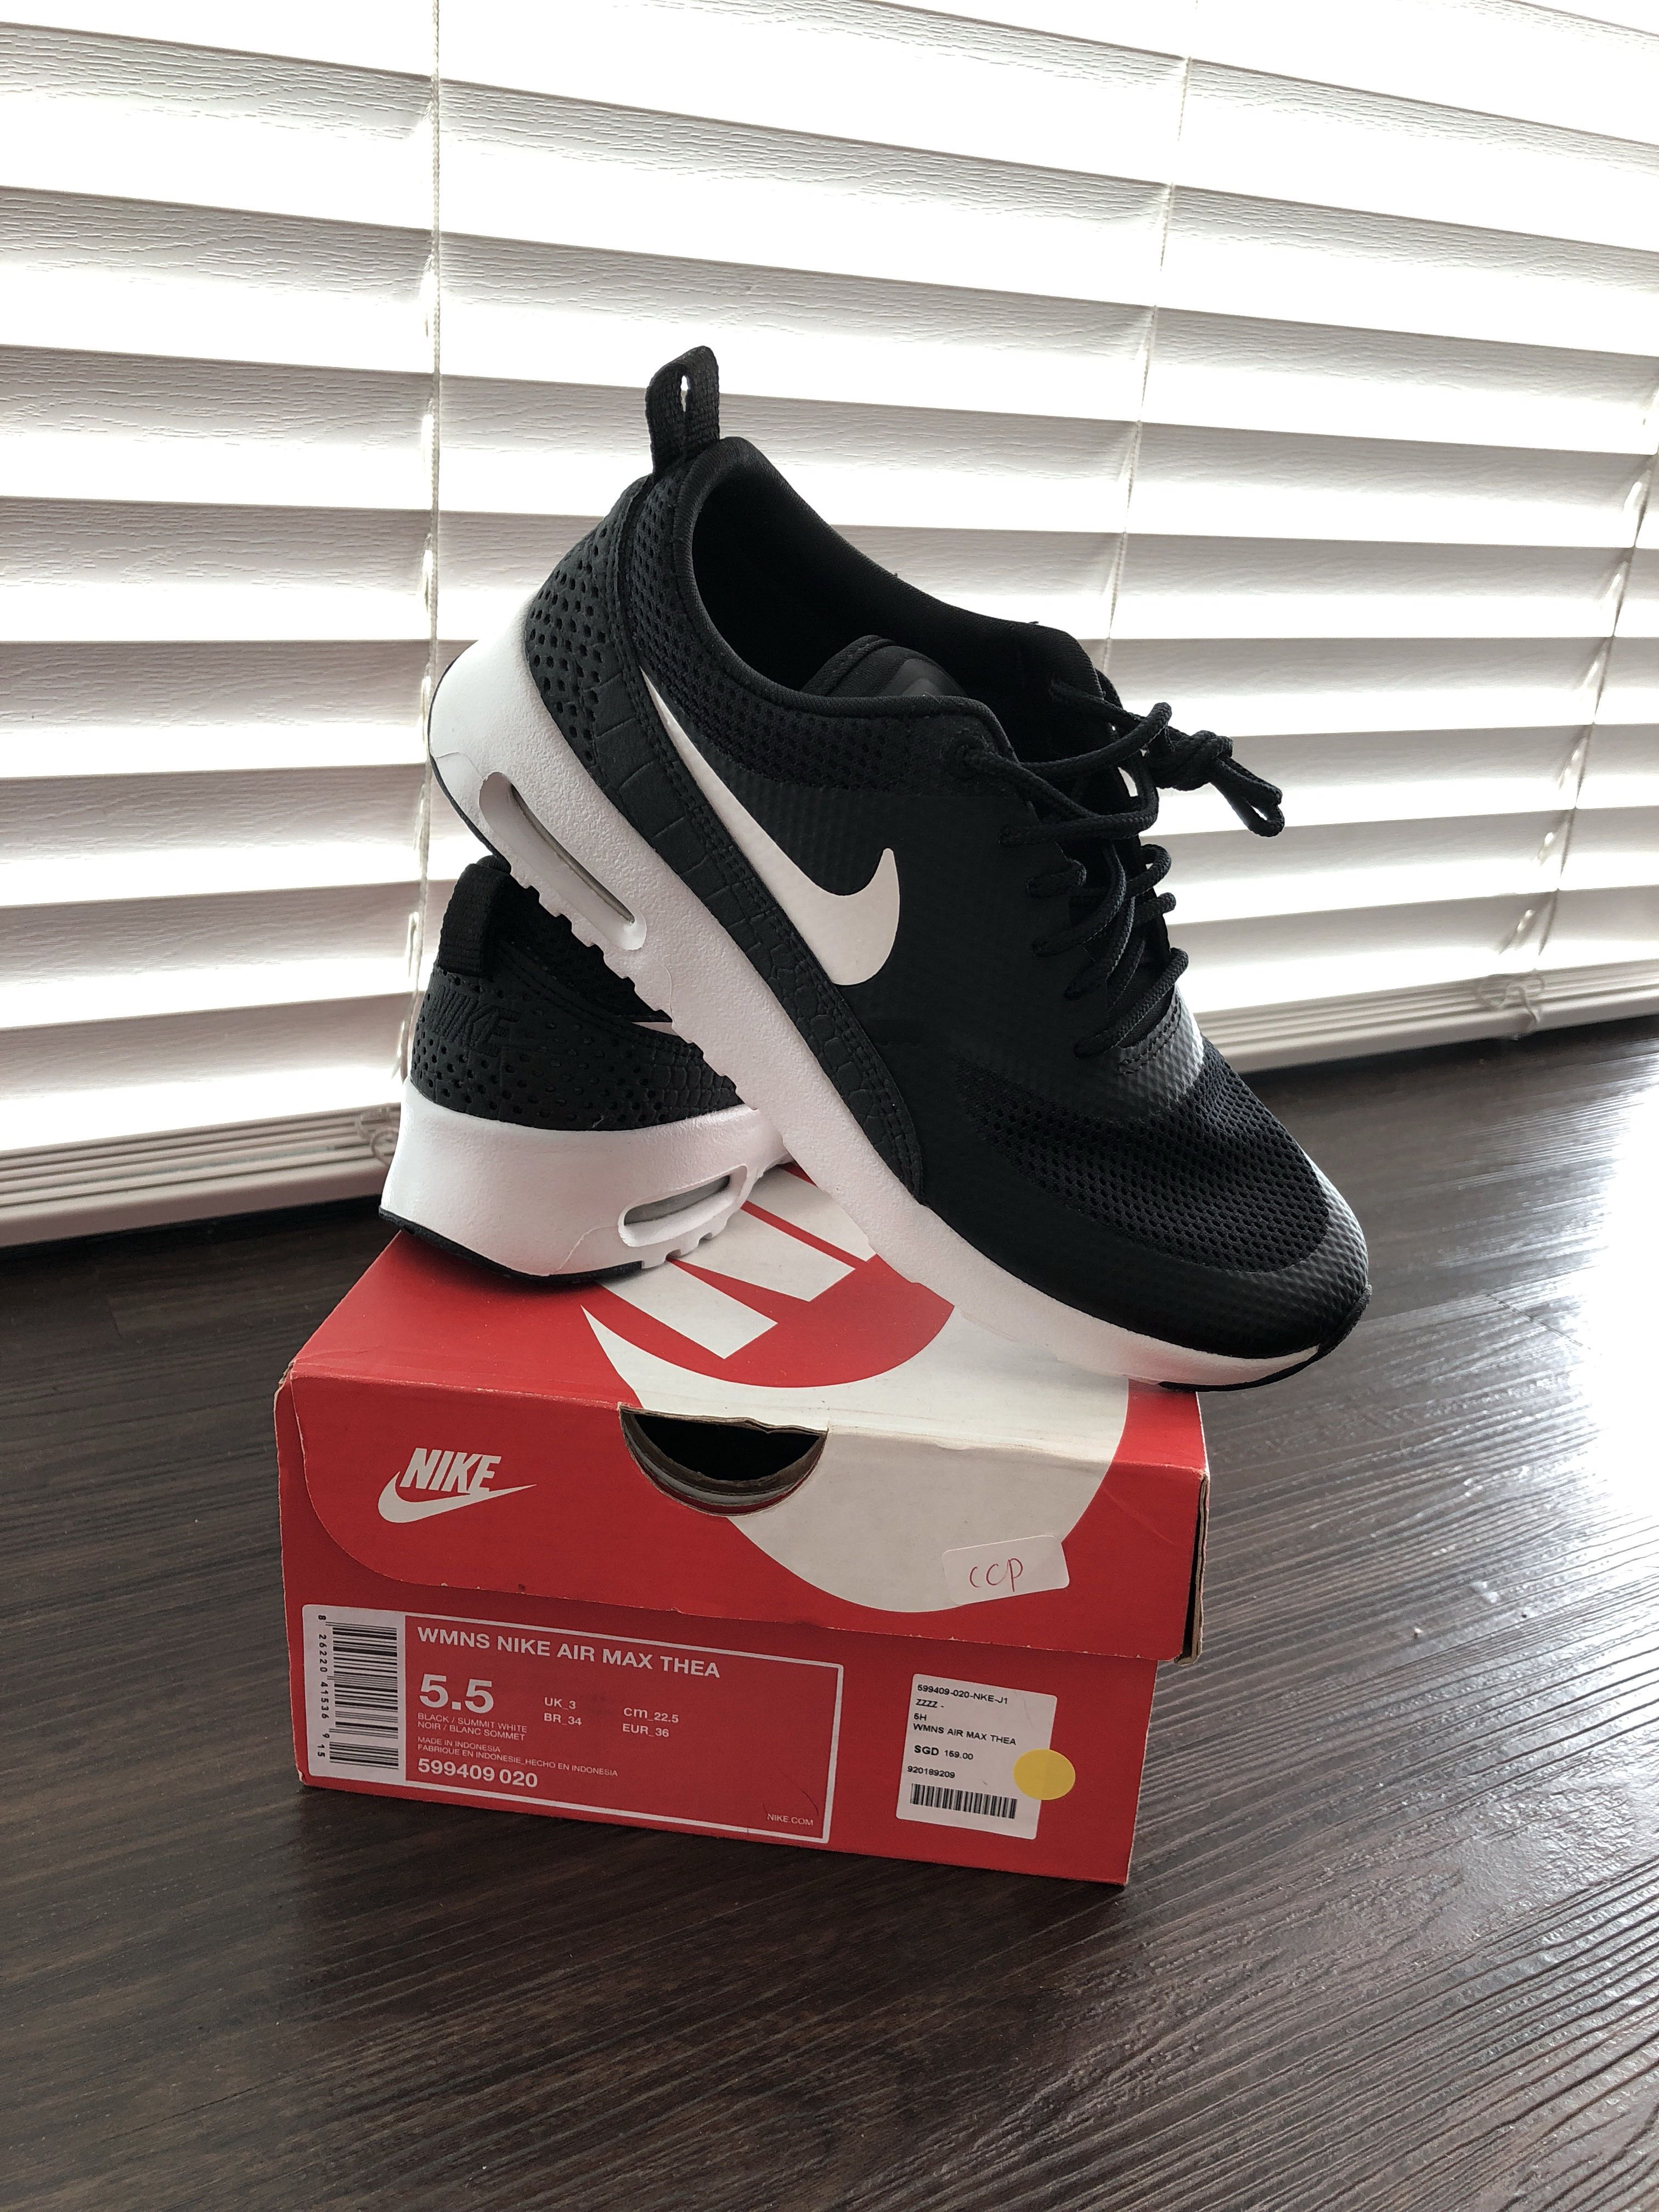 best website 918f5 b07ed BRAND NEW NIKE AIR MAX THEA, Women s Fashion, Shoes, Sneakers on ...